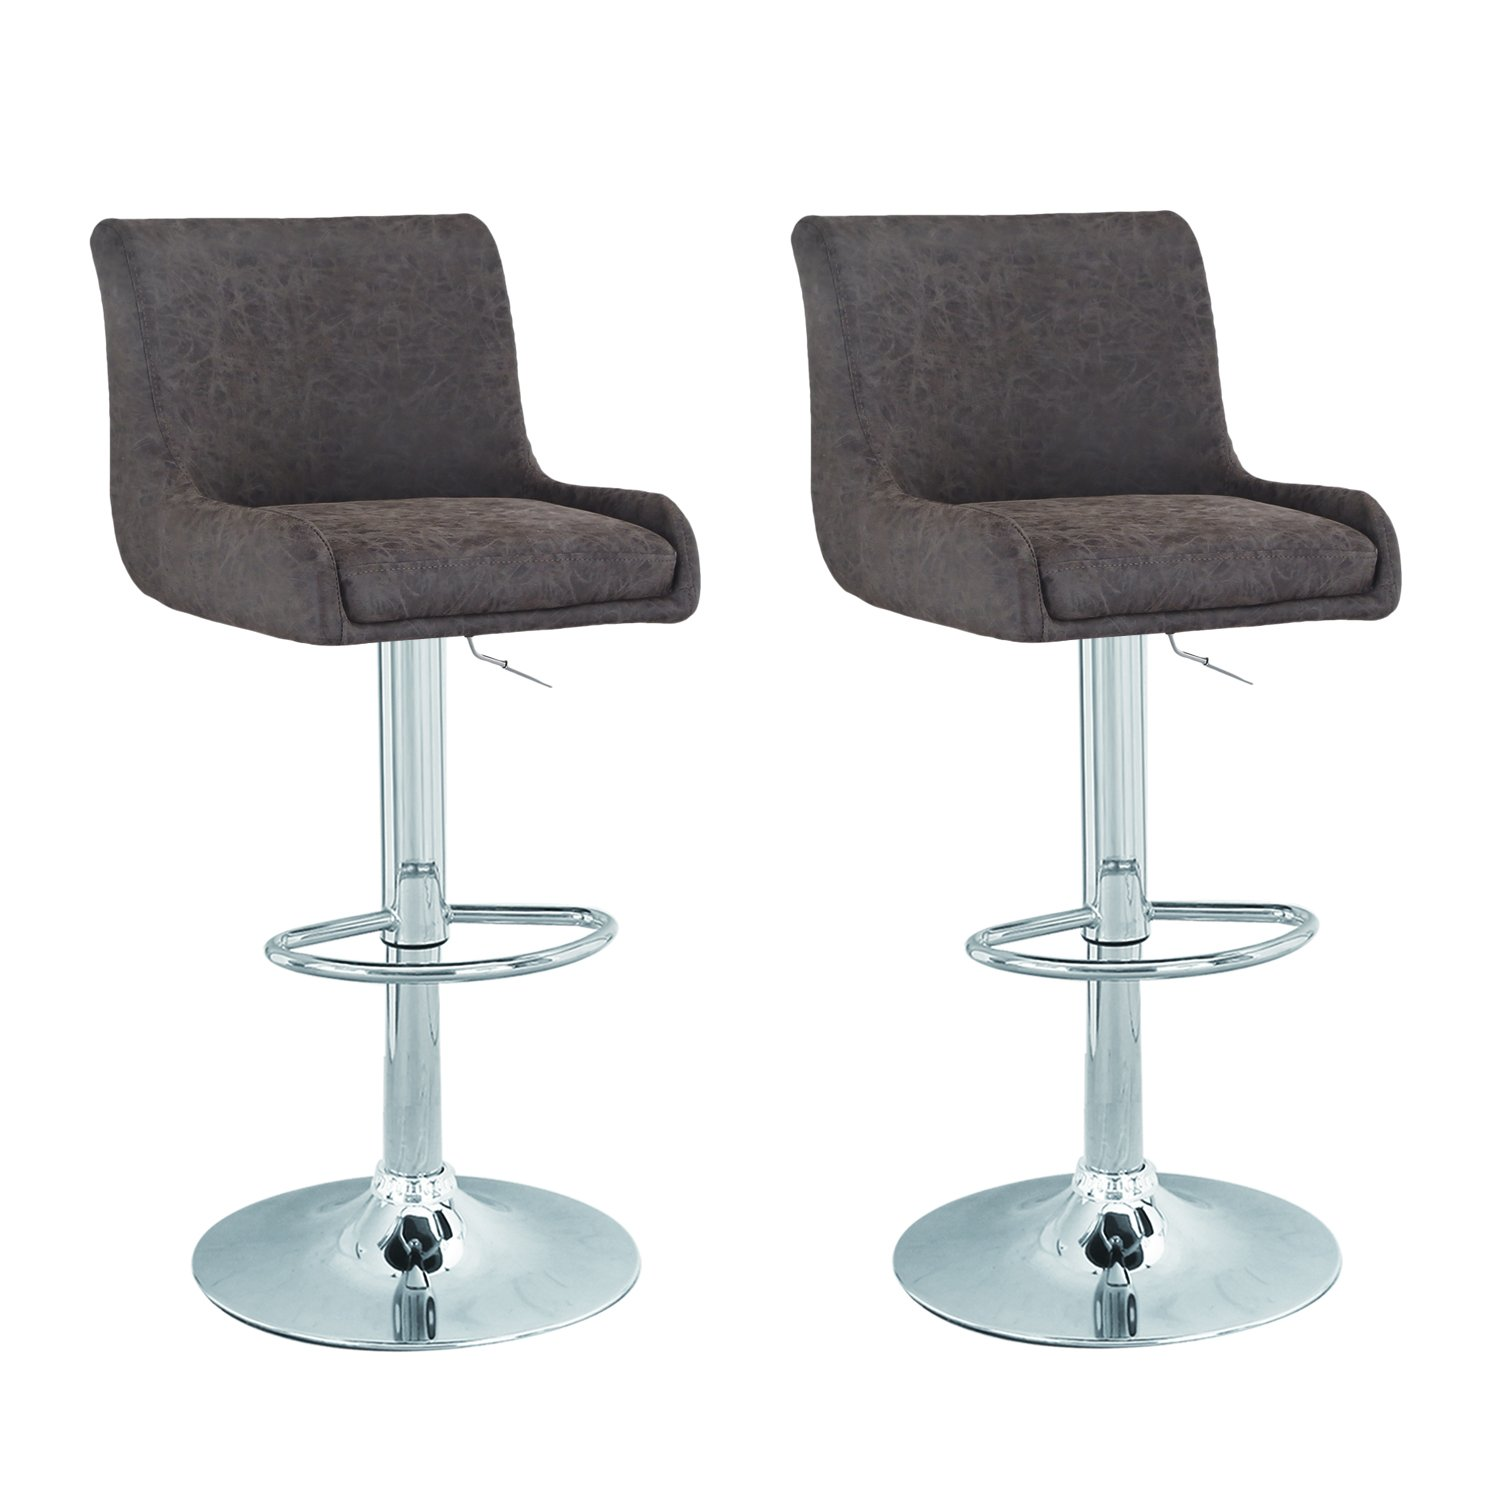 Adeco Cushioned Adjustable Swivel Counter Barstool Chair, dark brown by Adeco